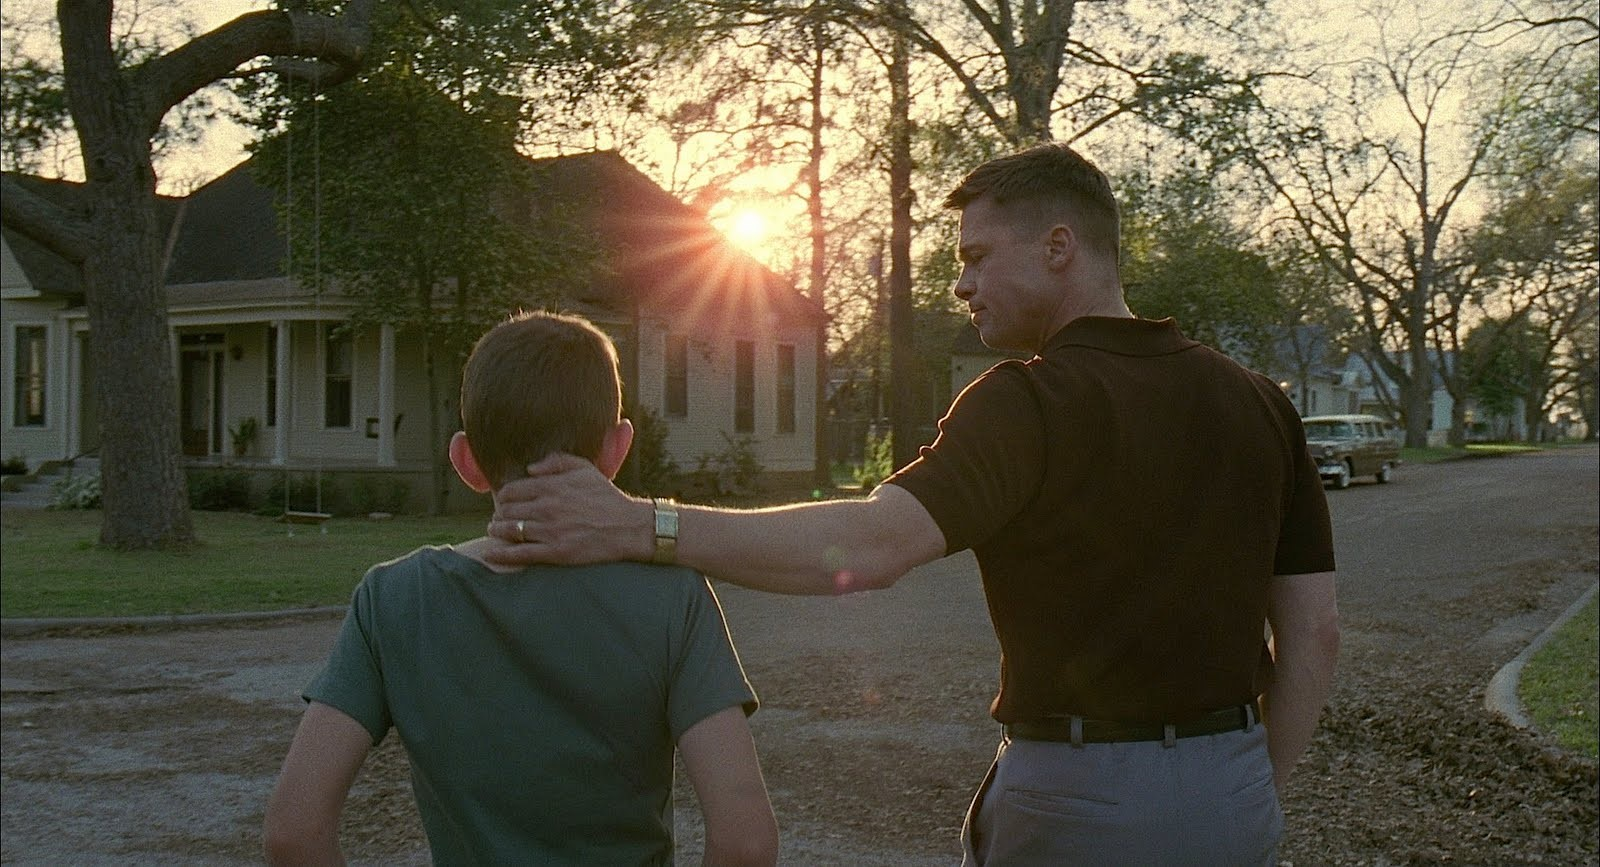 Sons of God Postwar Gender and Spirituality in Terrence Malick's ...